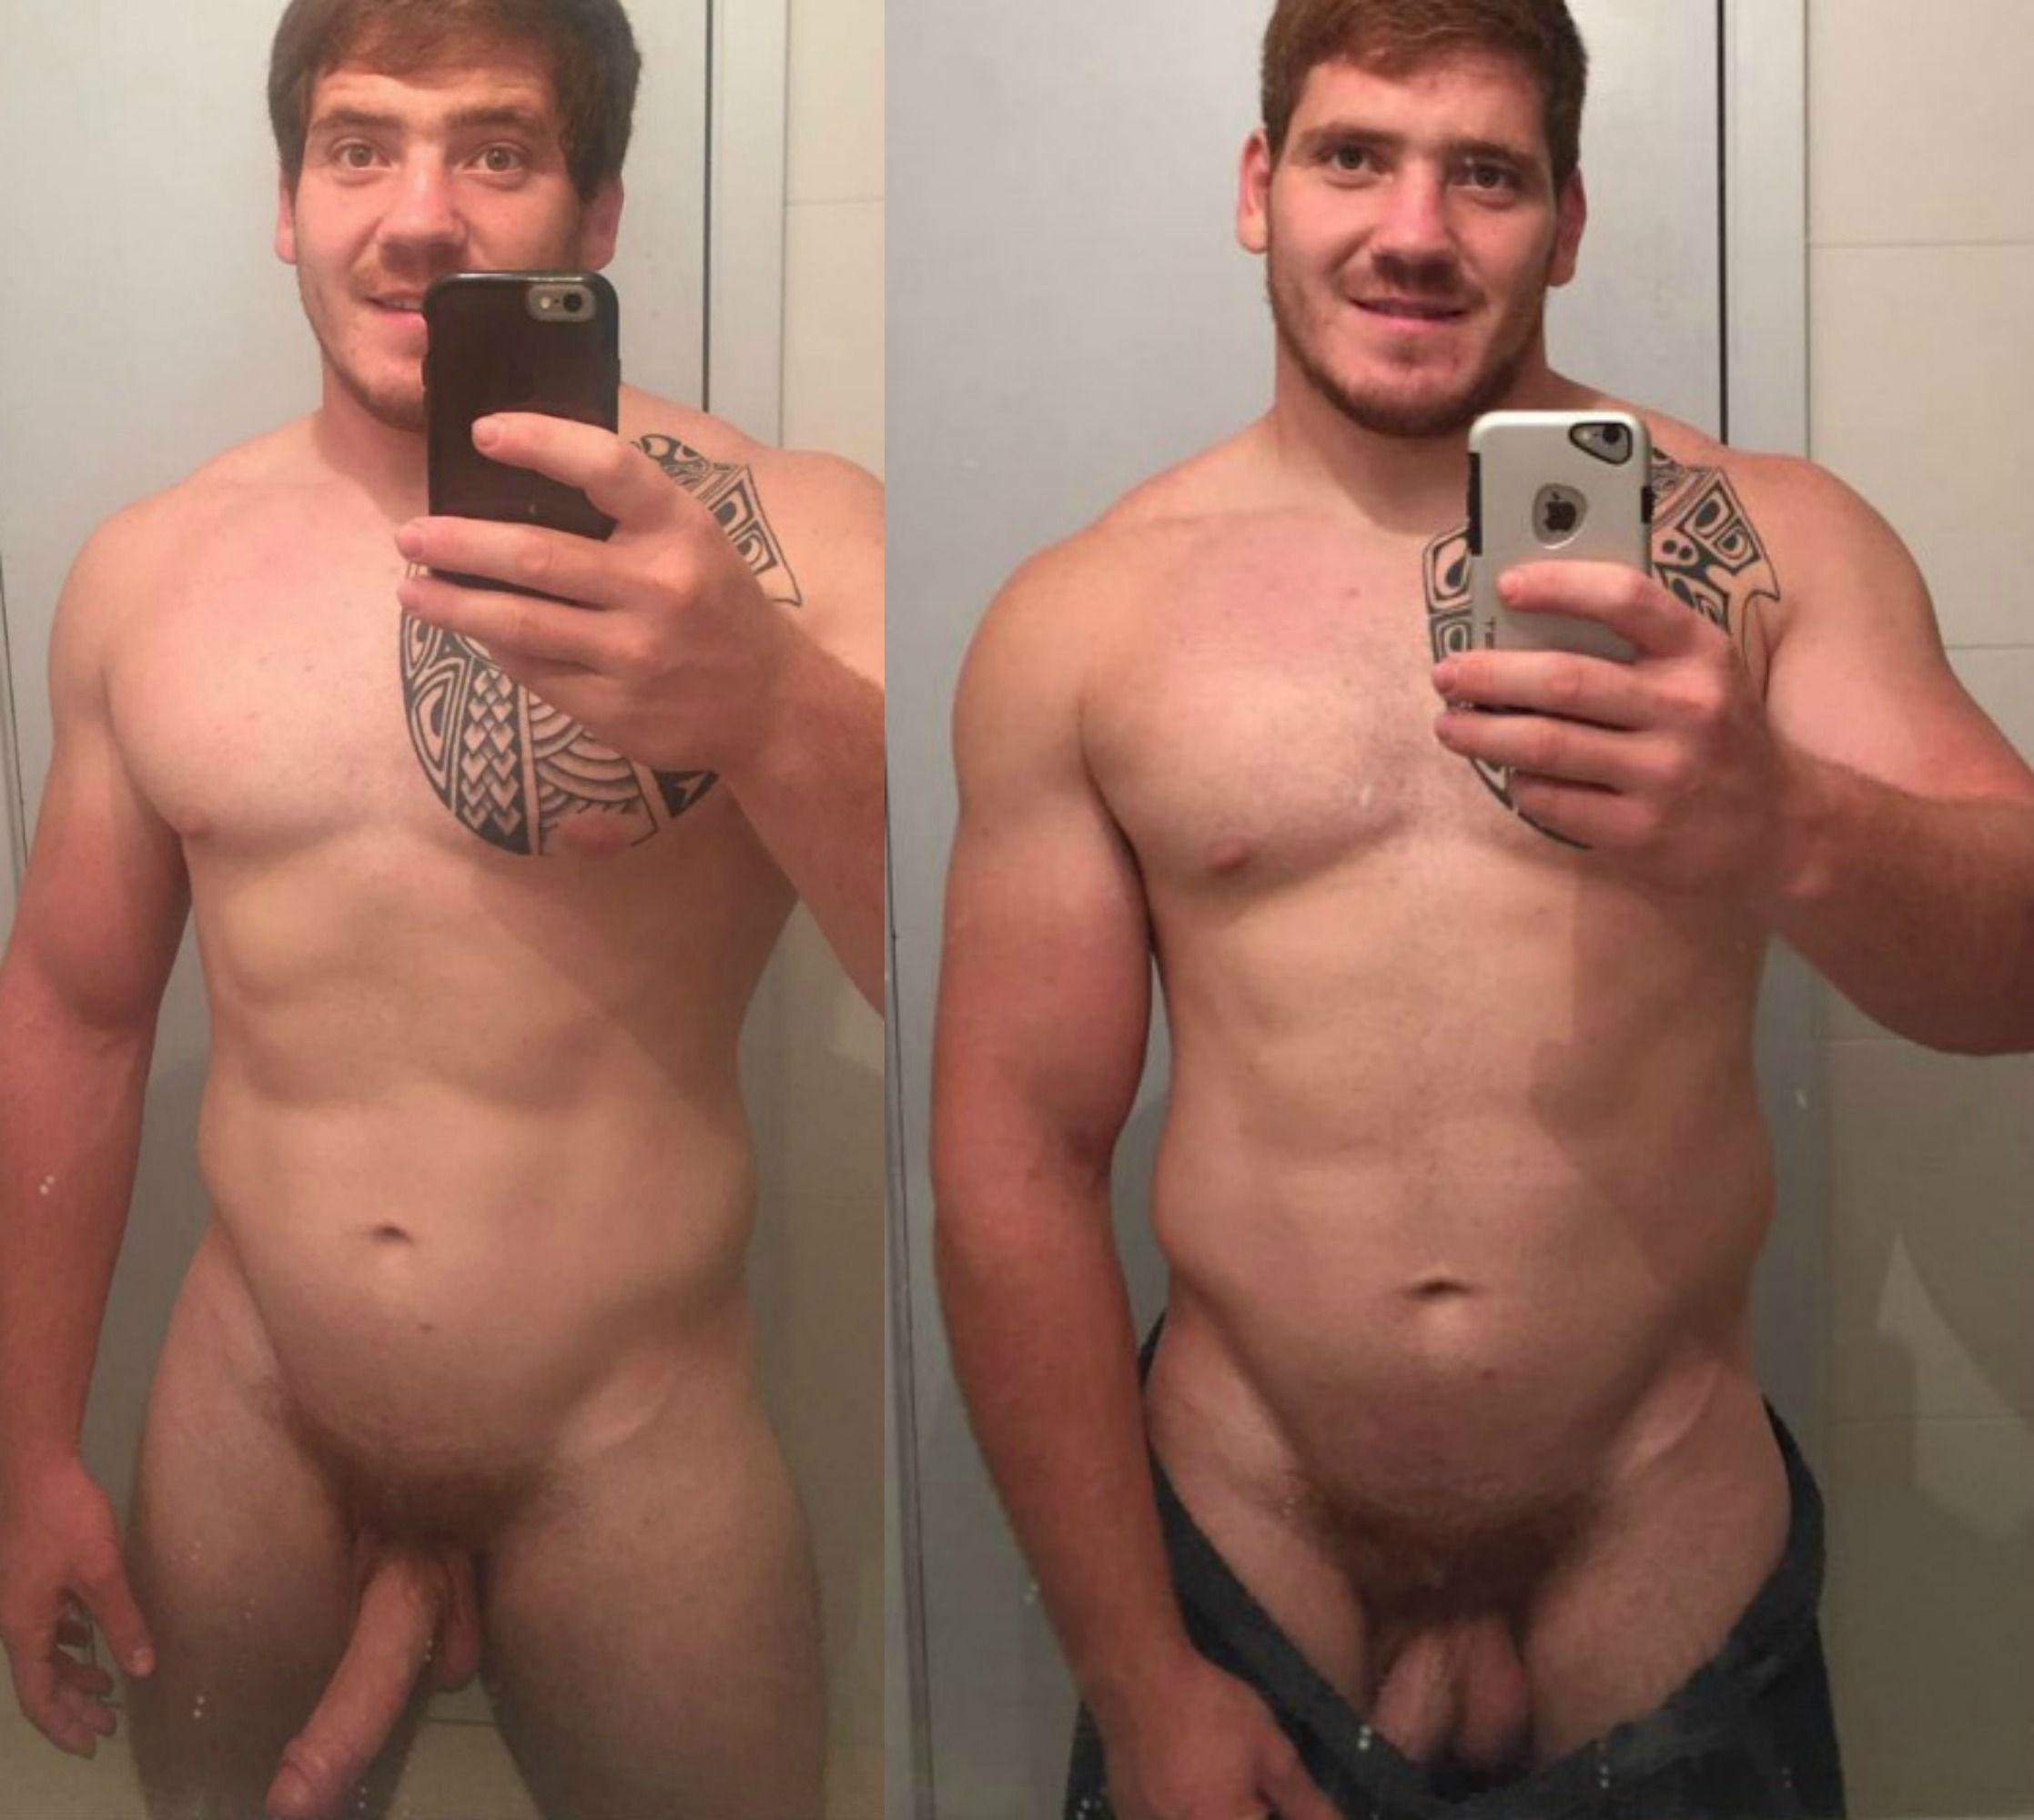 Argentina Boys Gays Porno naked hairy gay ginger bear . porn galleries.